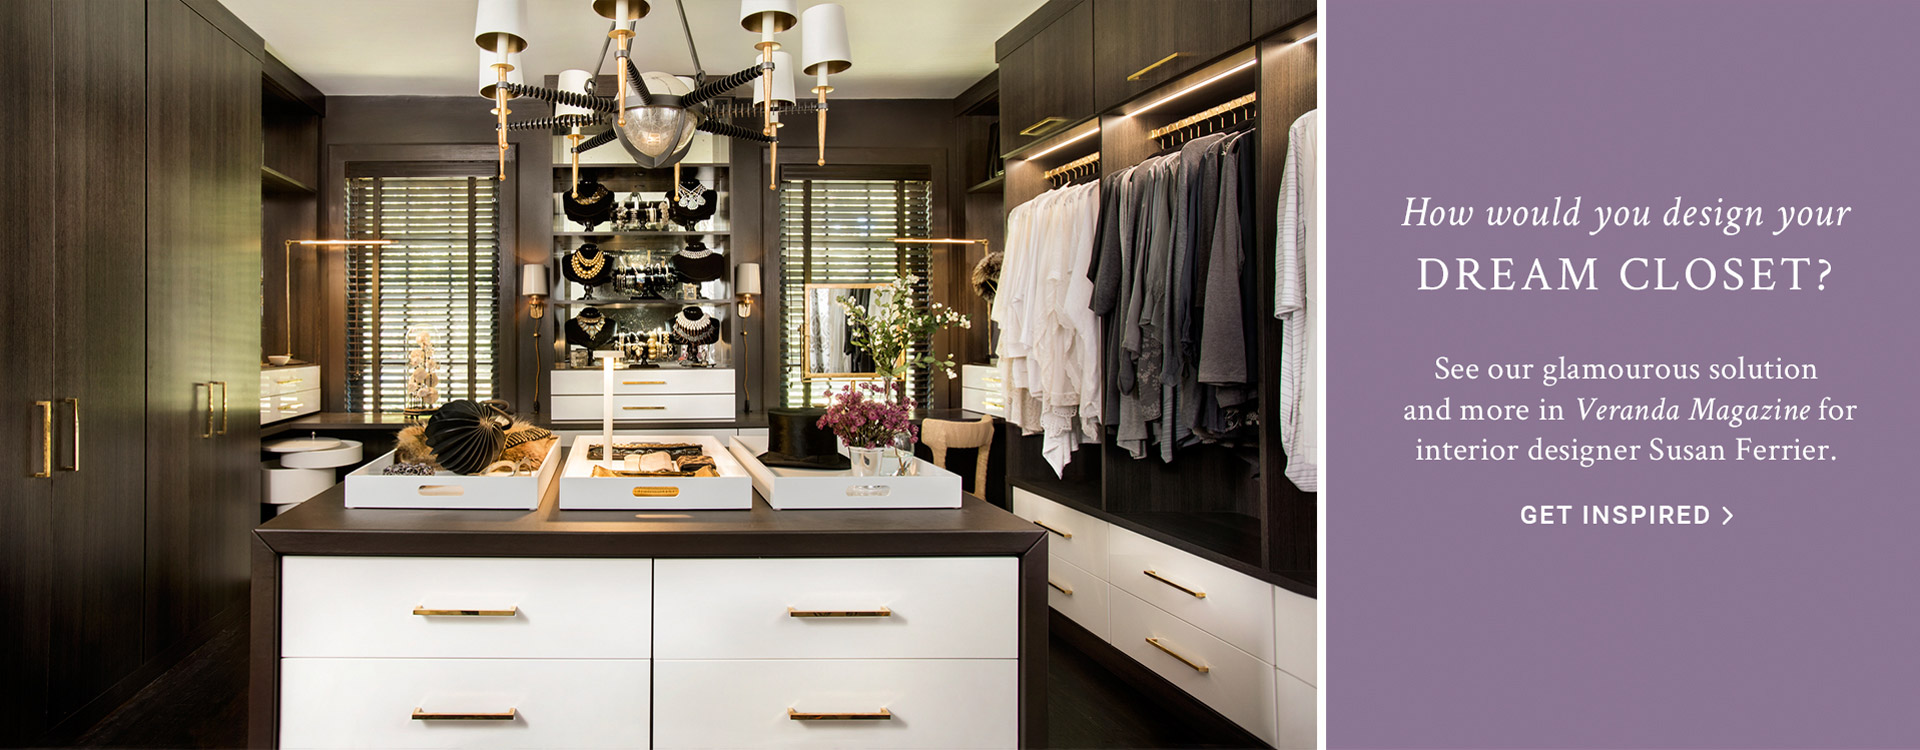 Custom Closets and Closet Organization